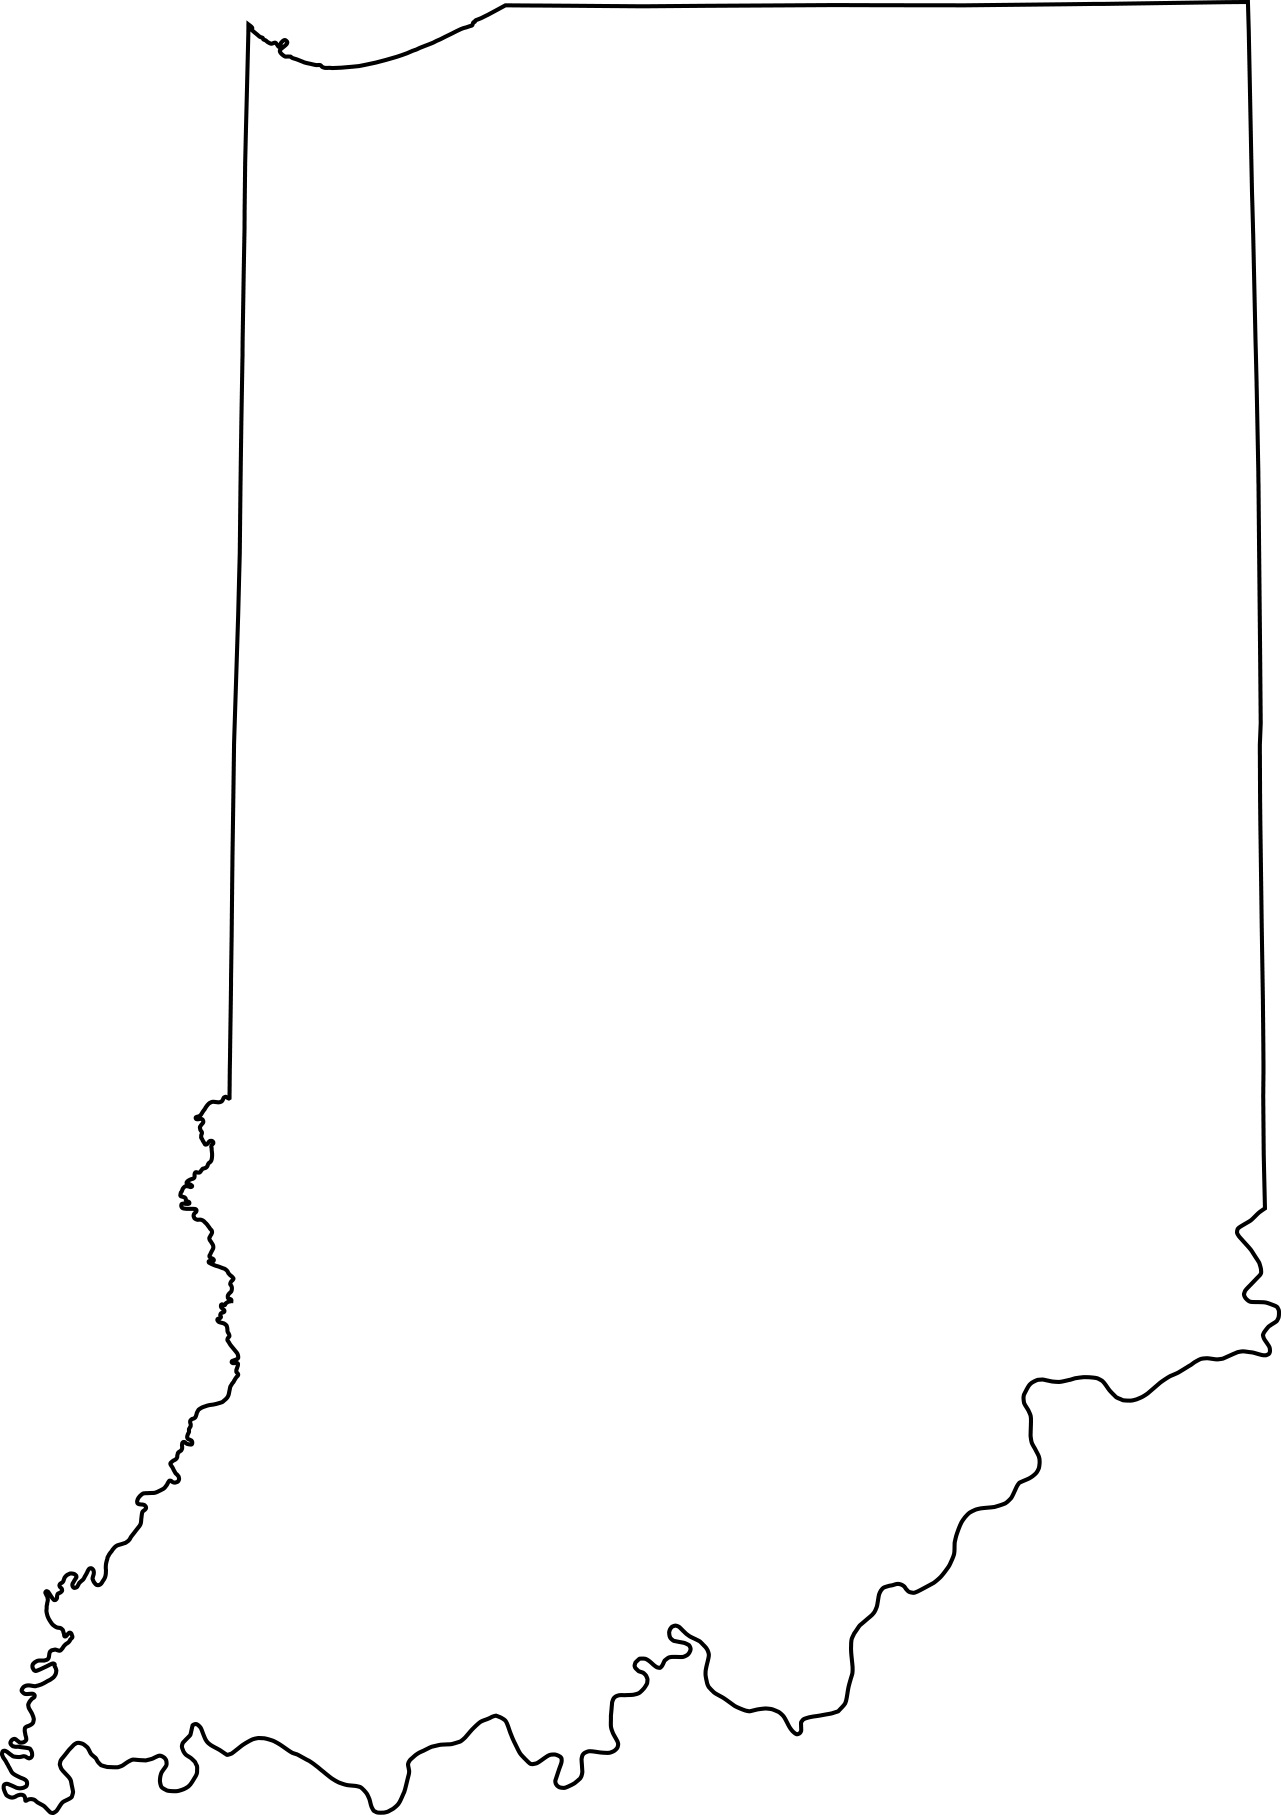 Indiana blank outline Map | Large Printable High Resolution and Standard Map